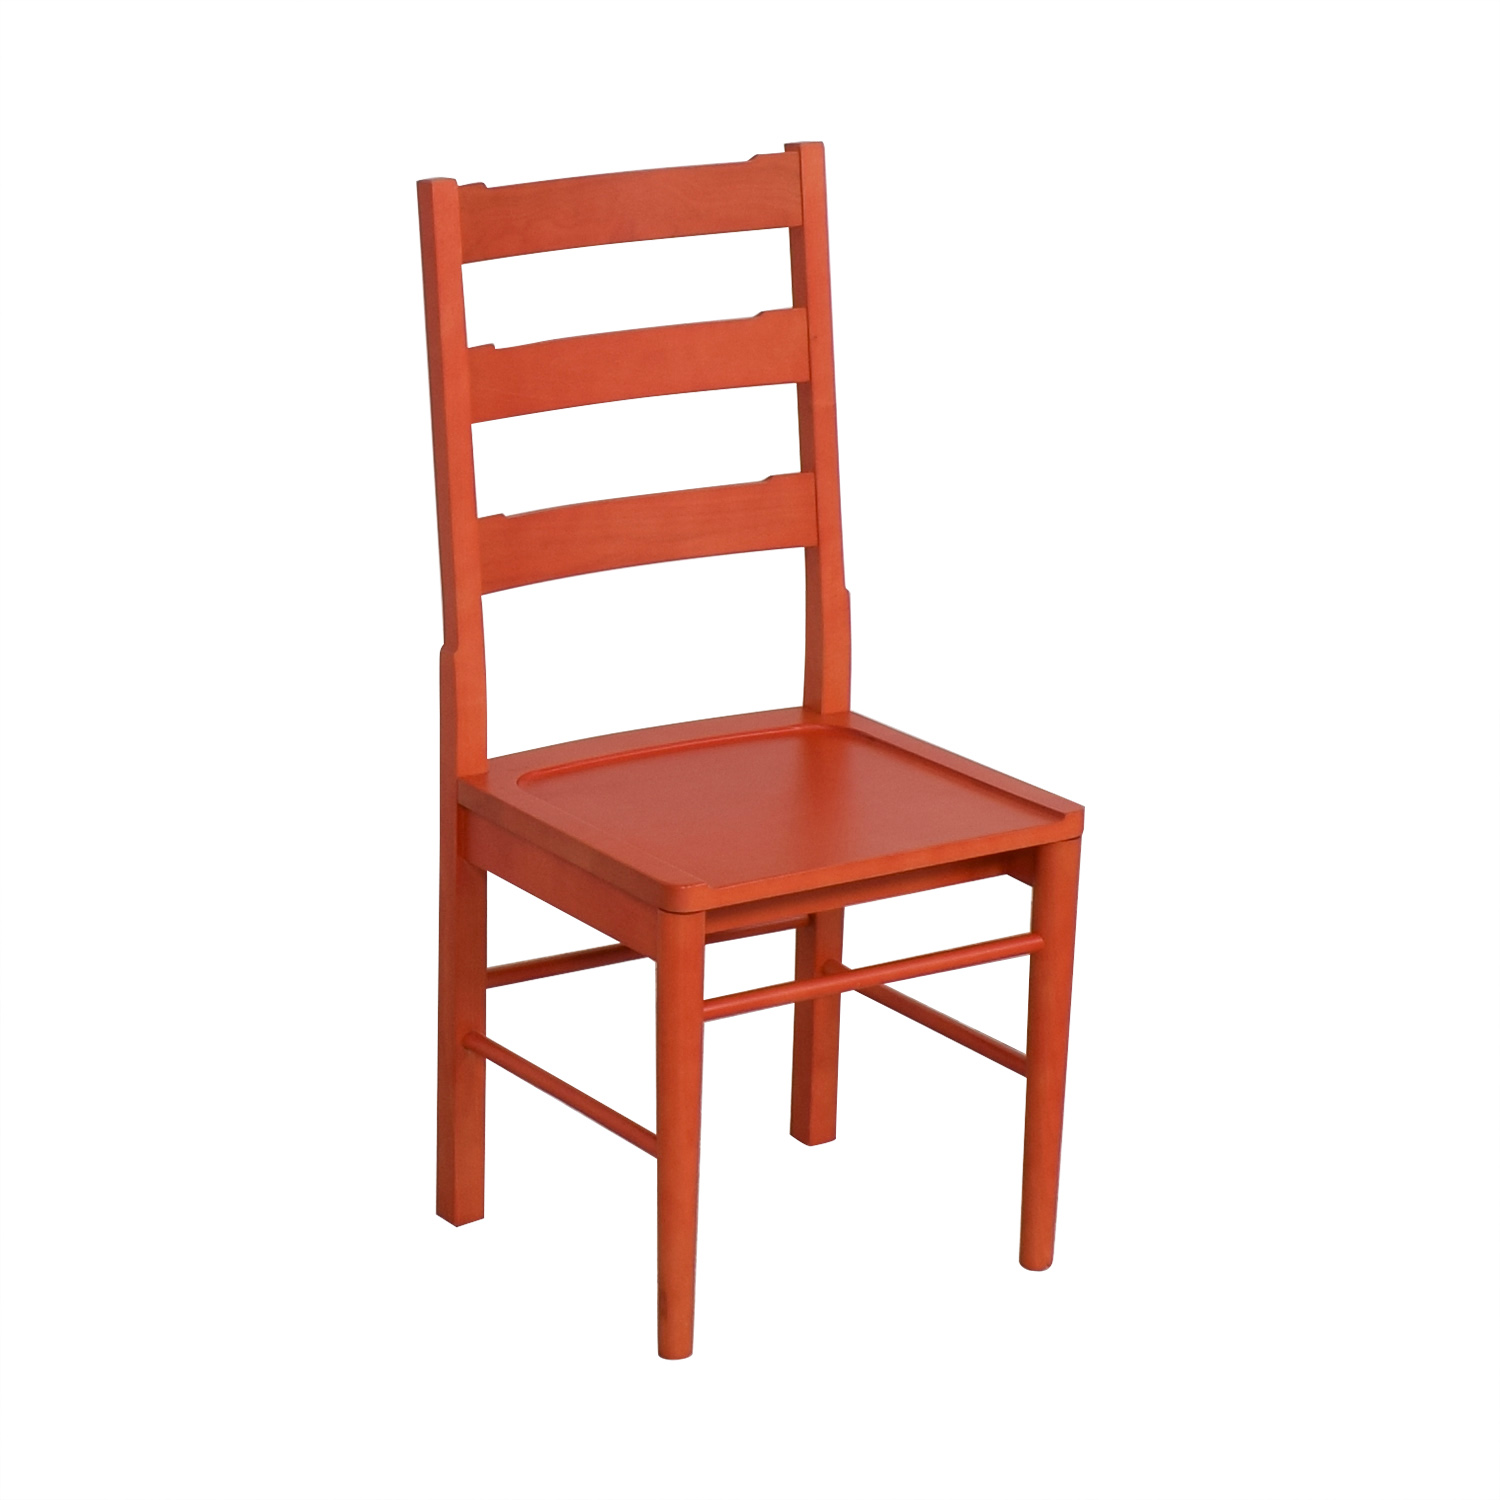 Rejuvenation Rejuvenation O&G Ladderback Dining Chair coupon